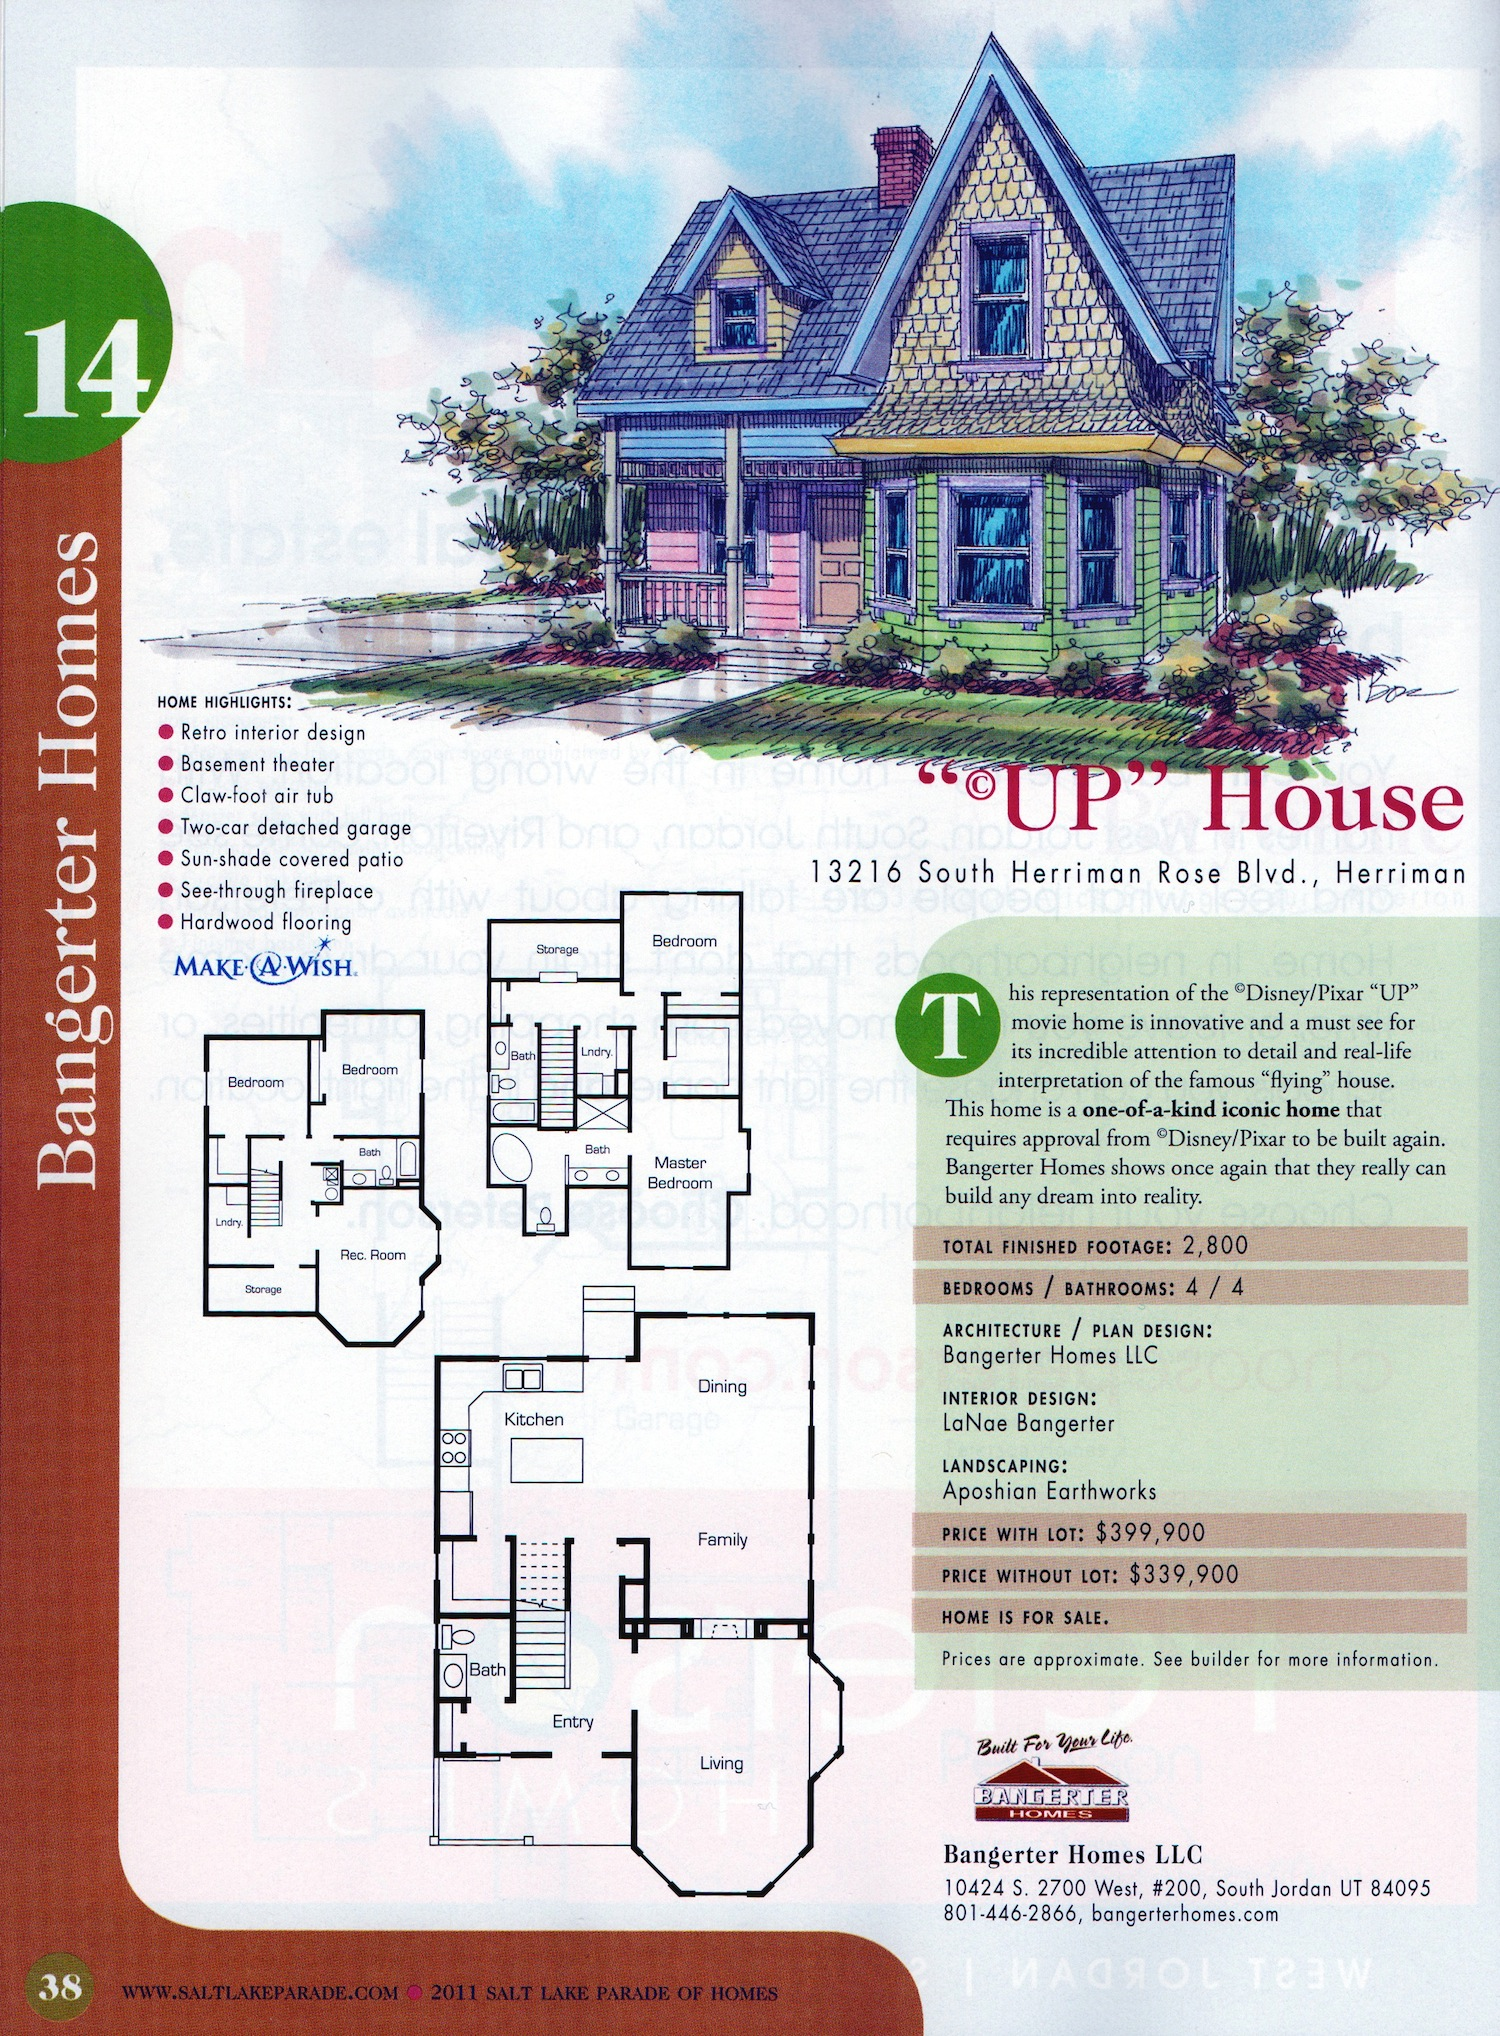 Up House Details